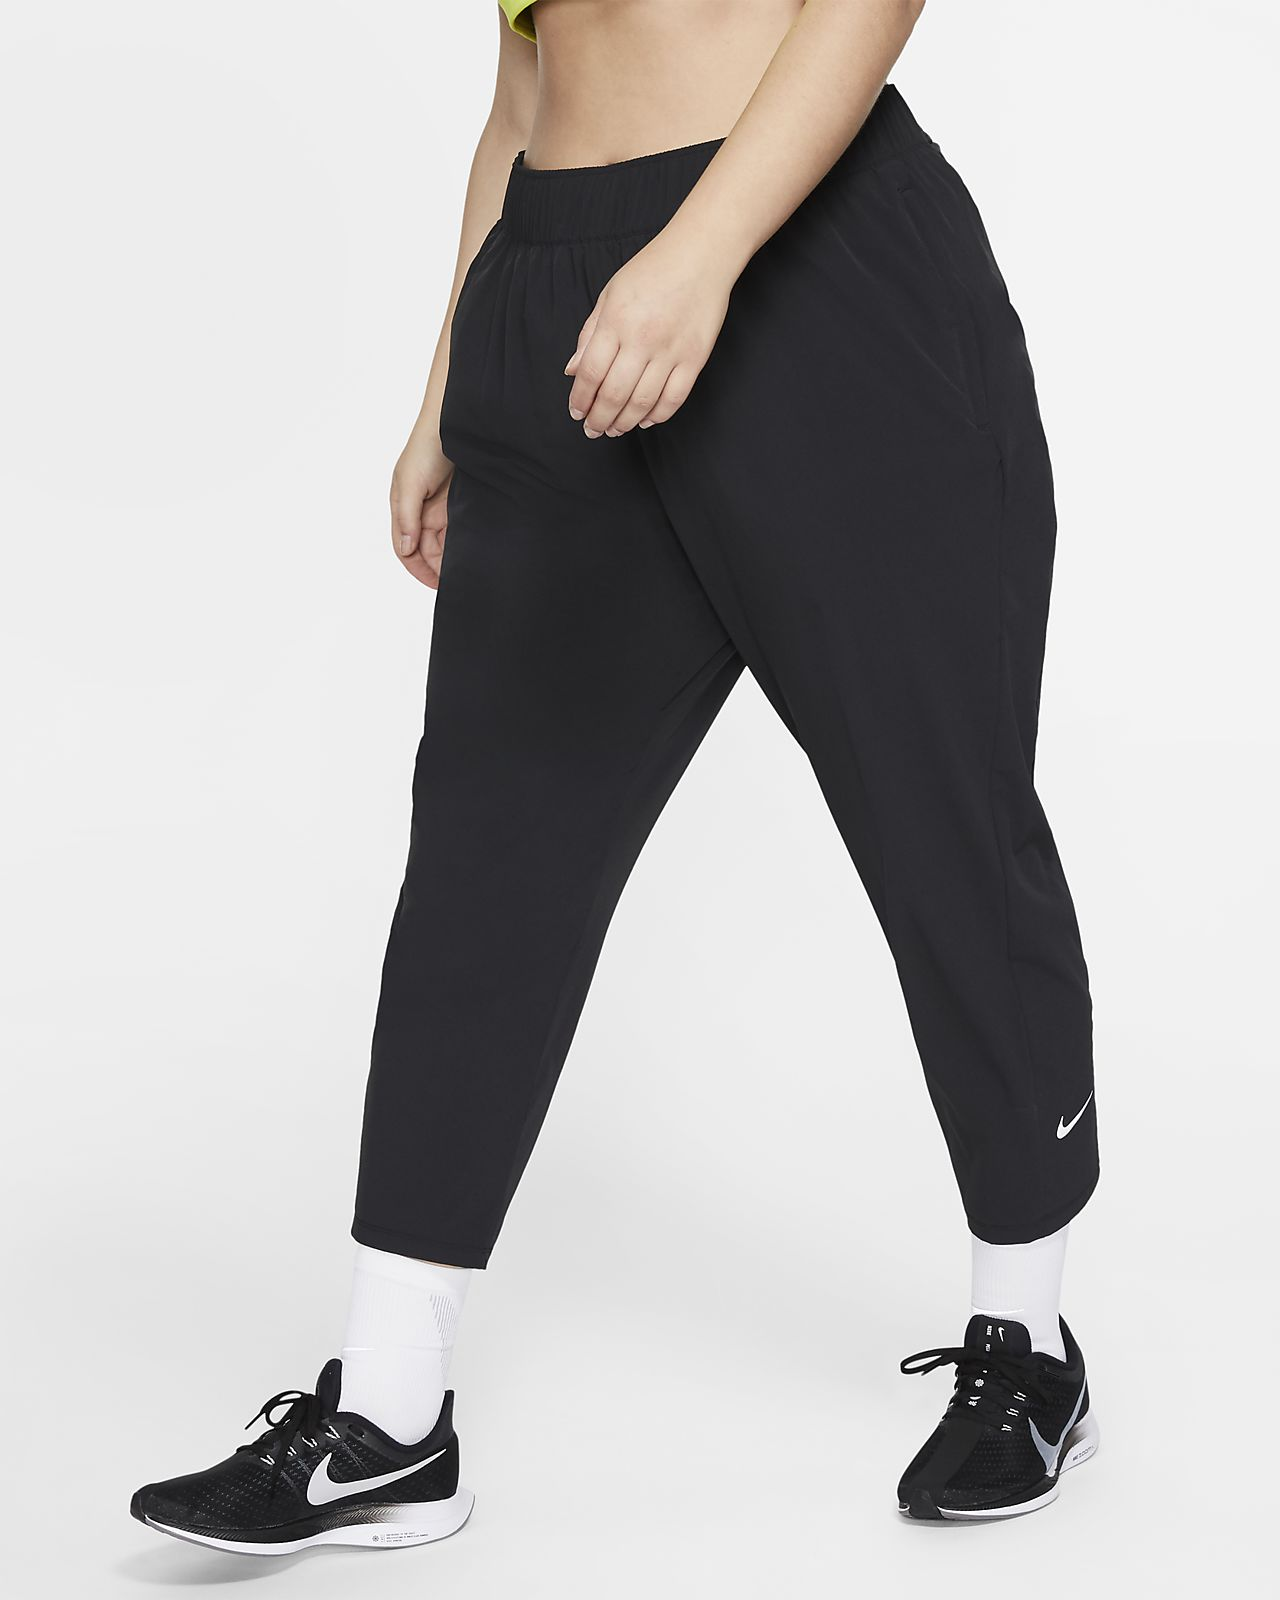 7/8 length nike leggings